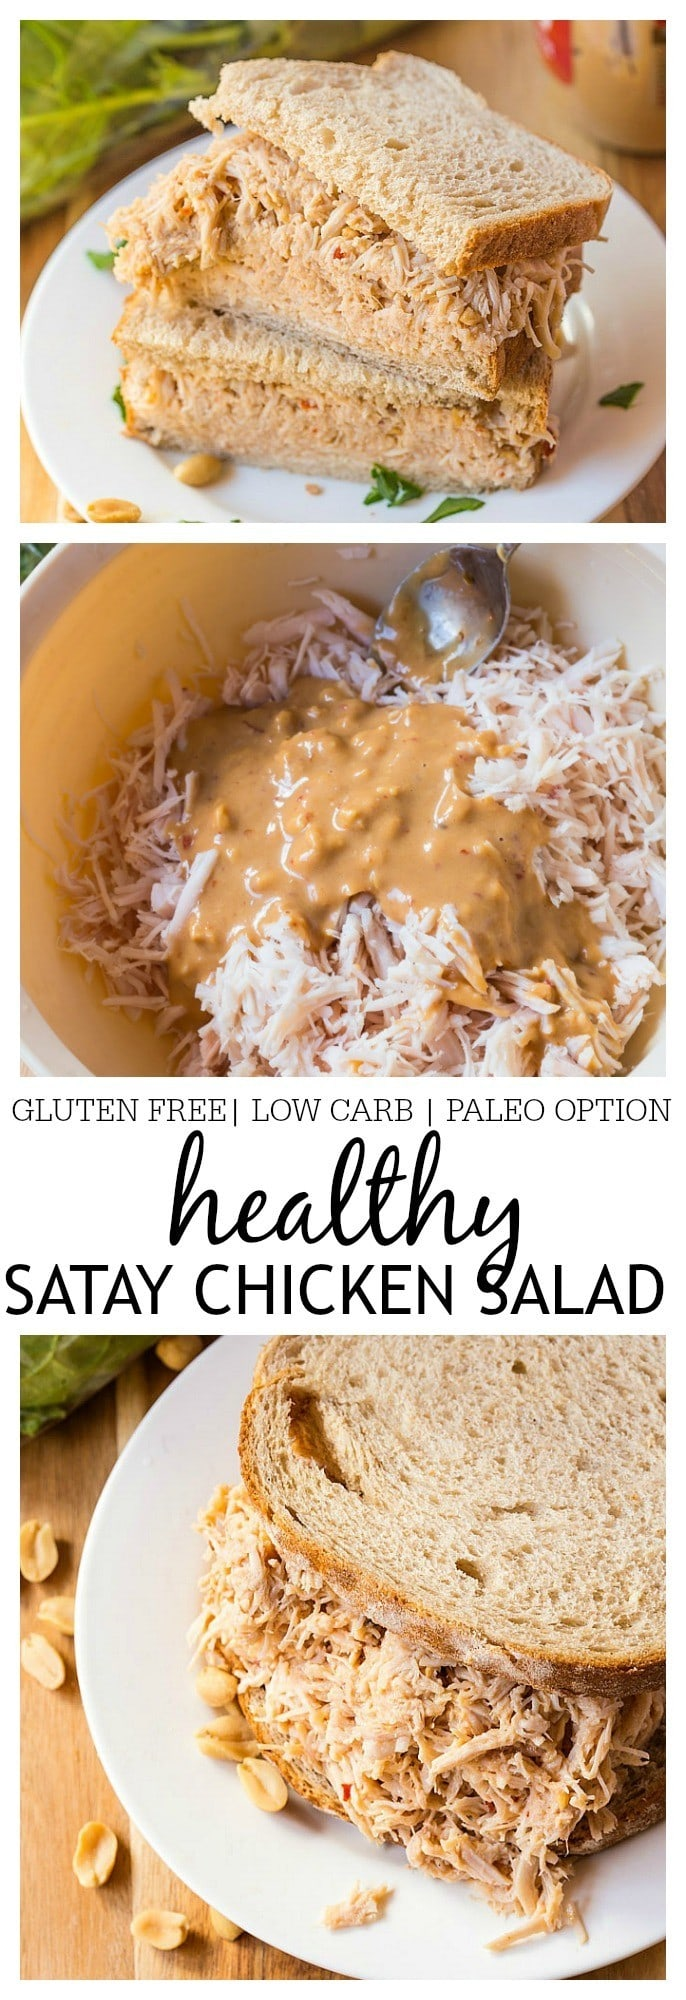 Healthy Satay Chicken Salad- Spruce up your sandwiches, wraps or bowls with this delicious healthy satay chicken salad! Chock full of flavour, this healthy salad combines peanut butter, sweet chilli sauce and liquid aminos to give your standard chicken salad a run for it's money- Gluten Free, low carb and a paleo option!  @thebigmansworld - thebigmansworld.com